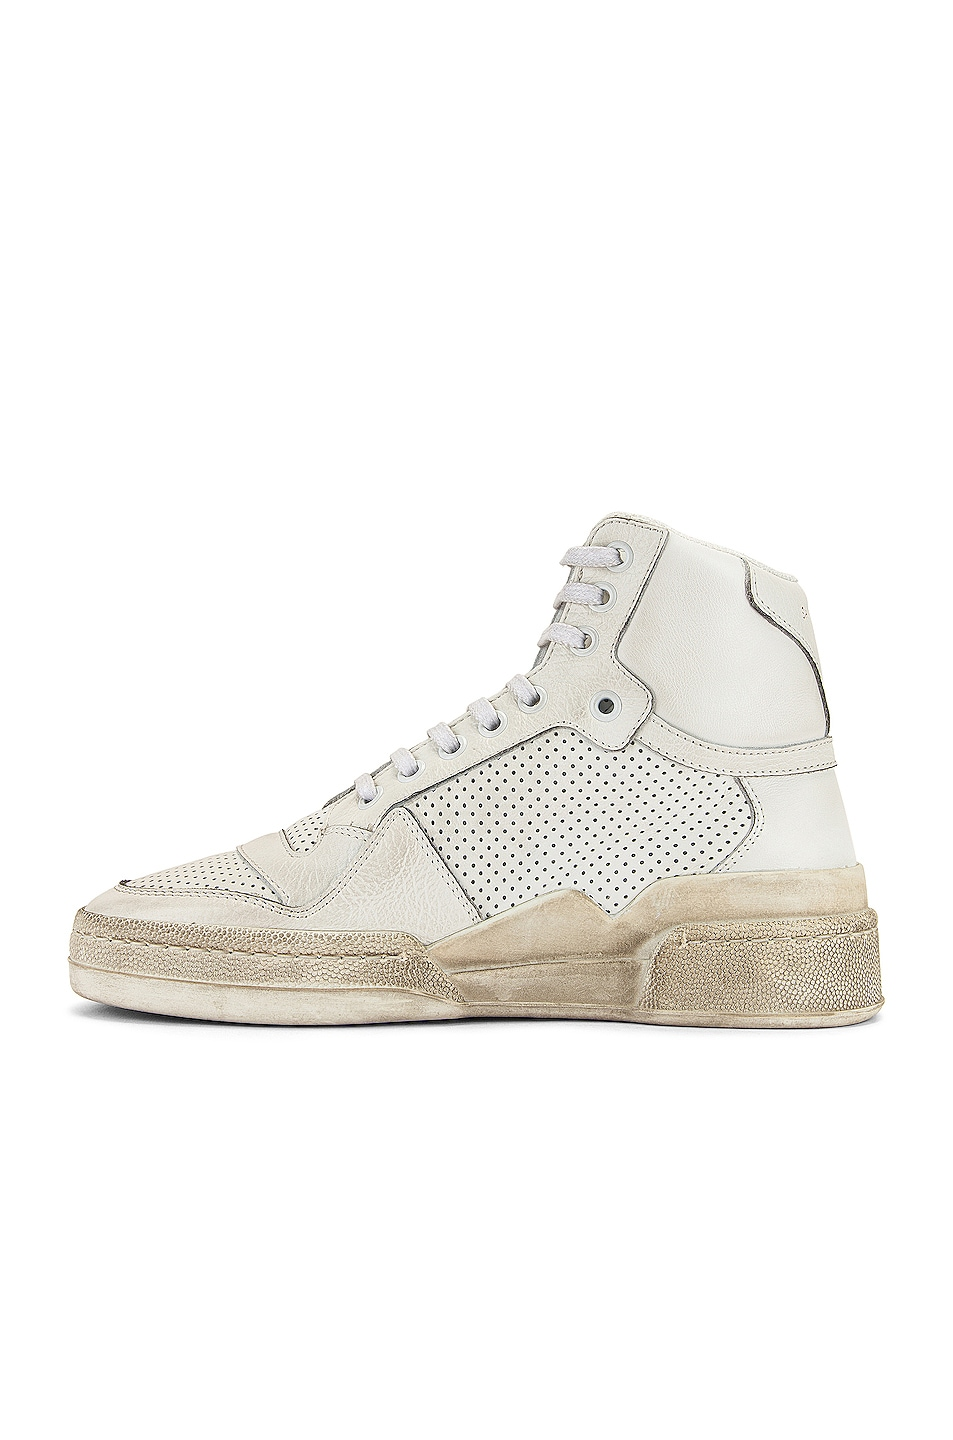 Image 5 of Saint Laurent High Top Sneakers in White